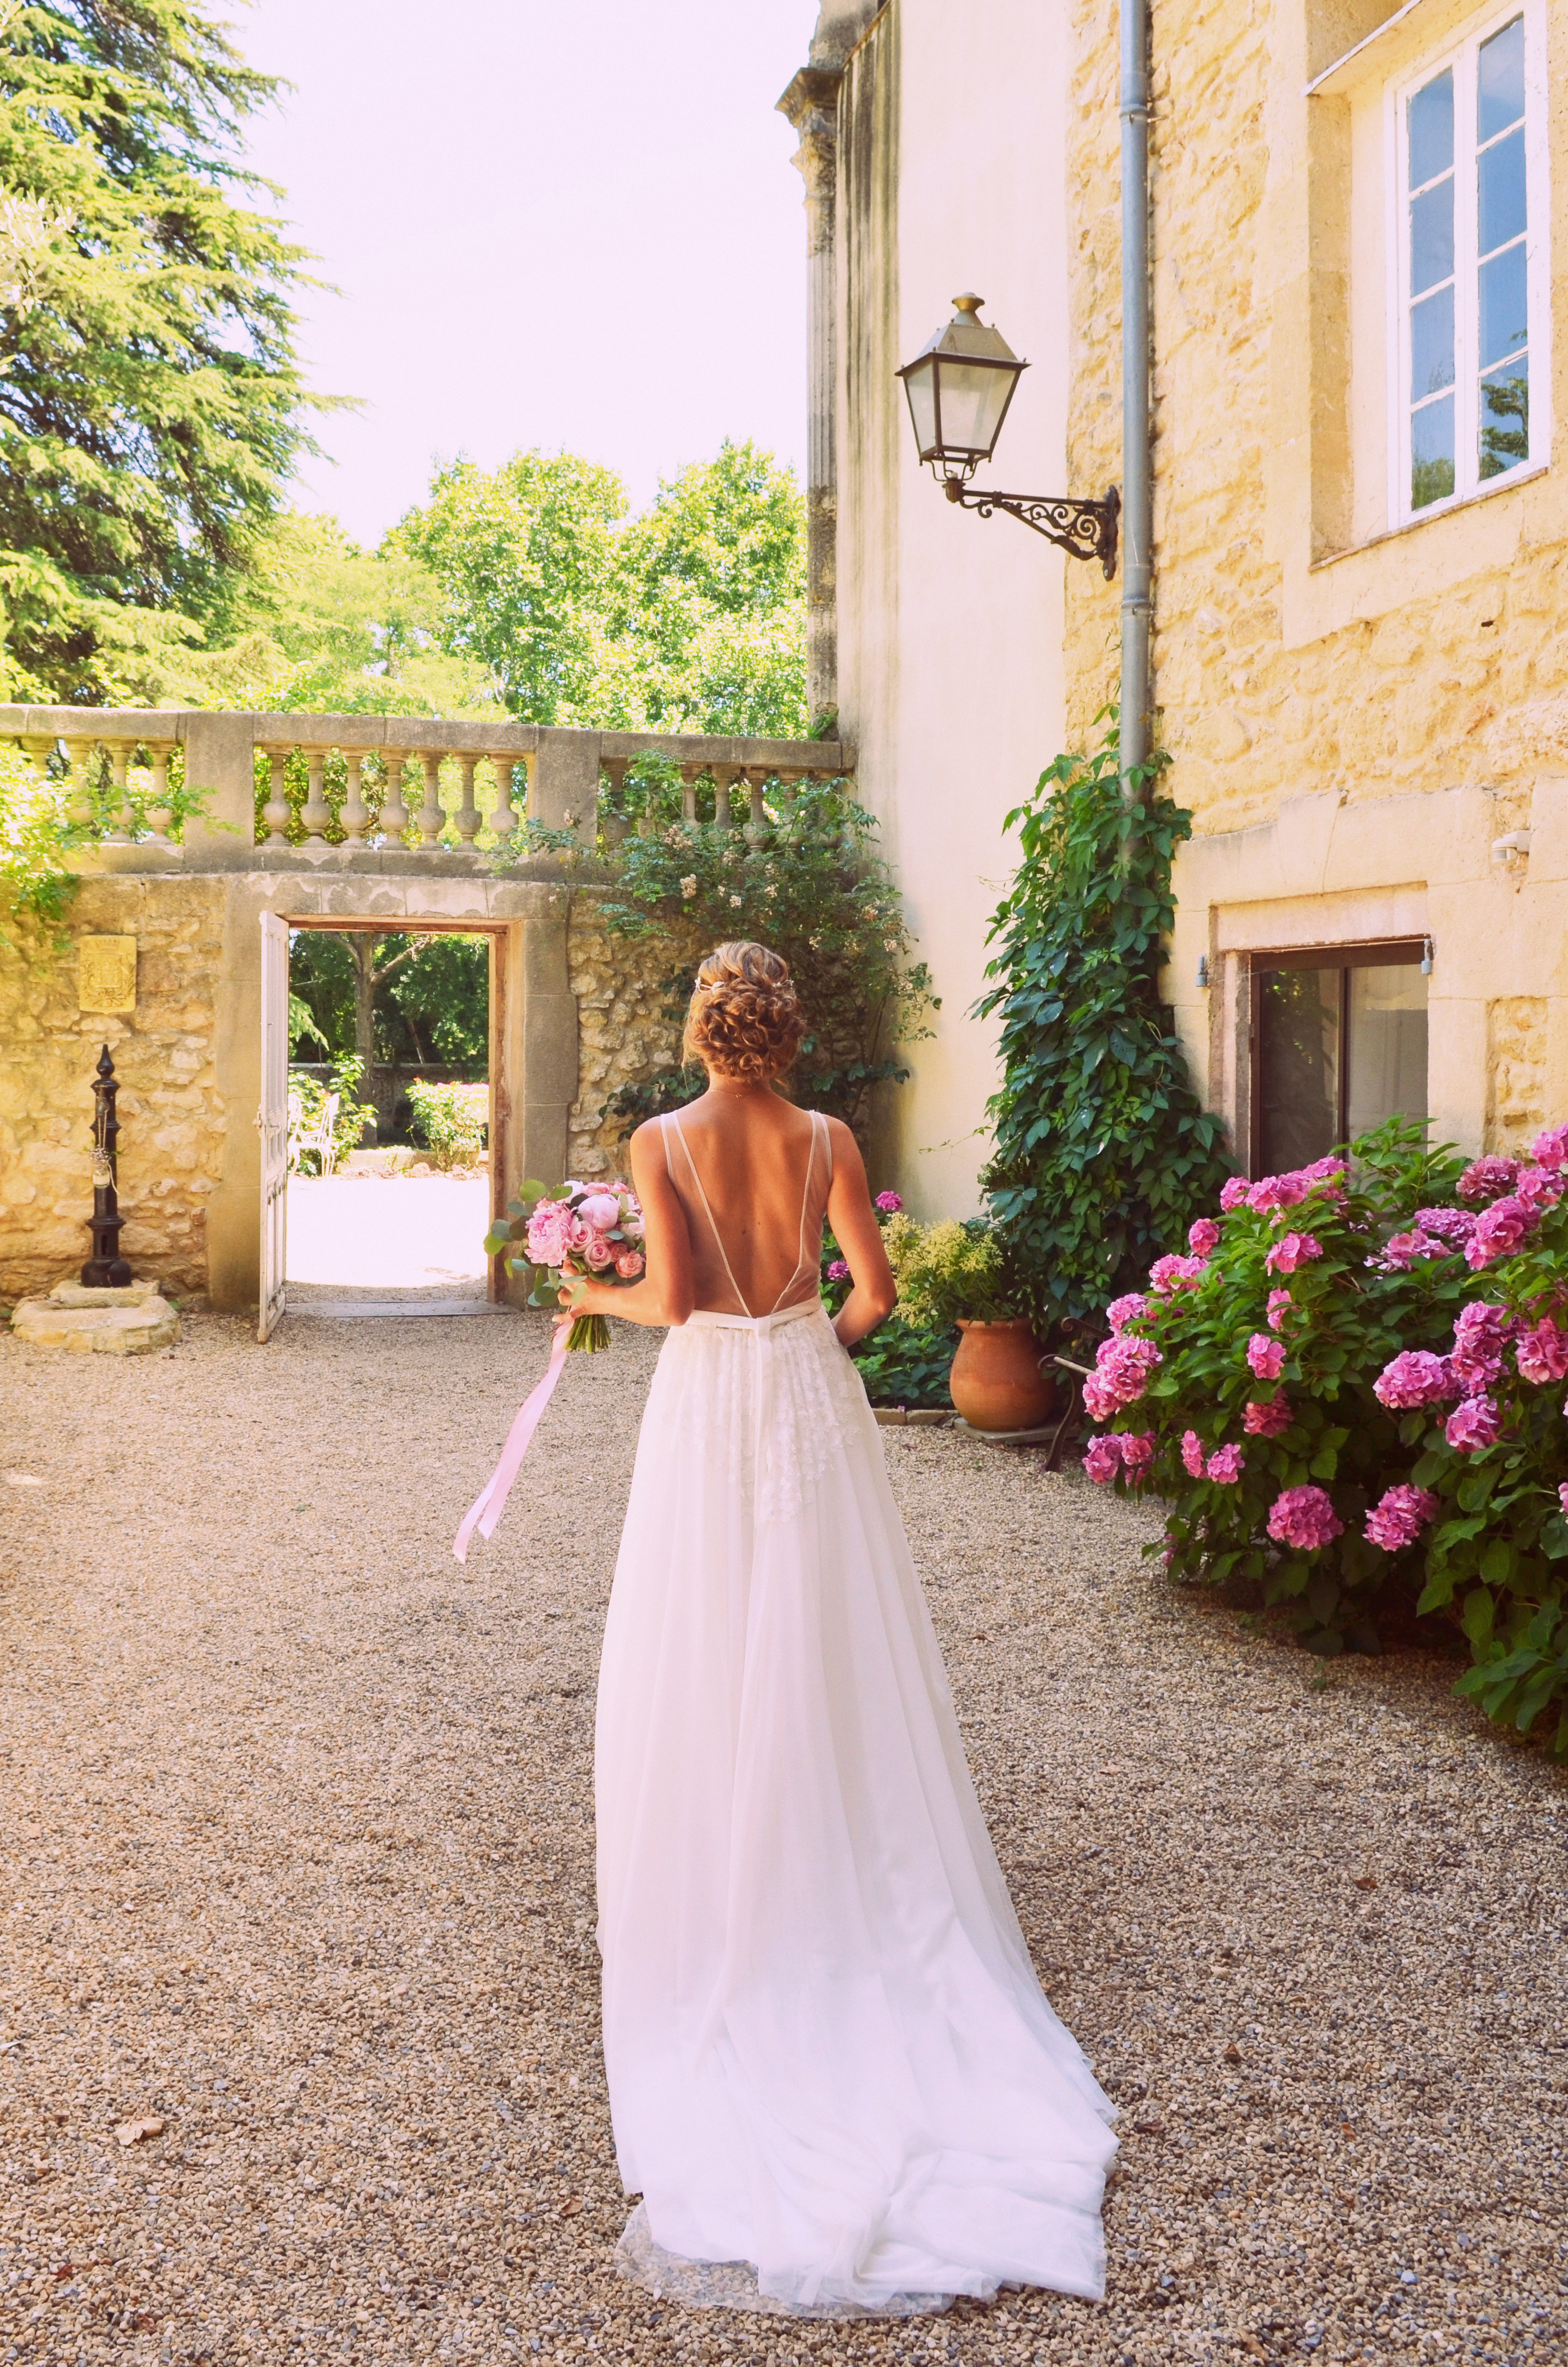 Authentic Love Photography Photographe Mariage Montpellier Herault